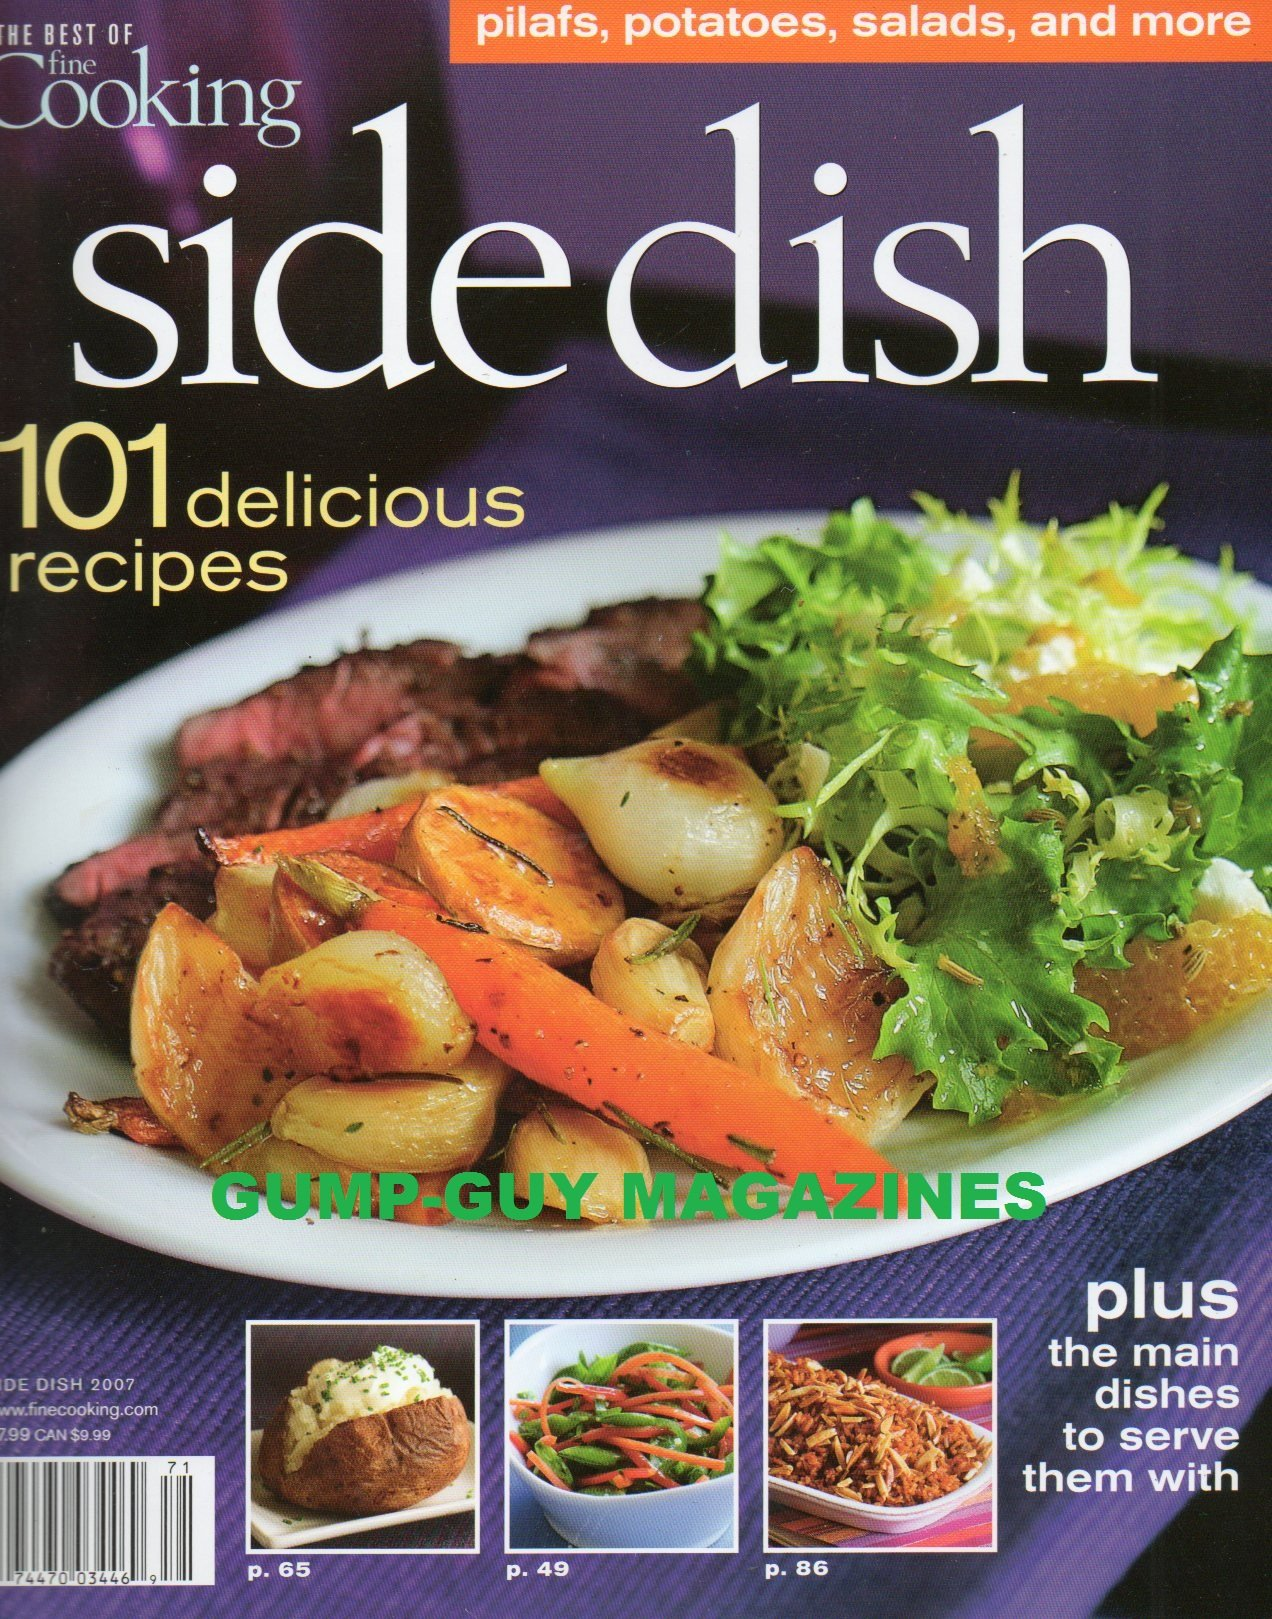 Download SIDE DISH 101 Delicious Recipes (The Best of Fine Cooking) PDF